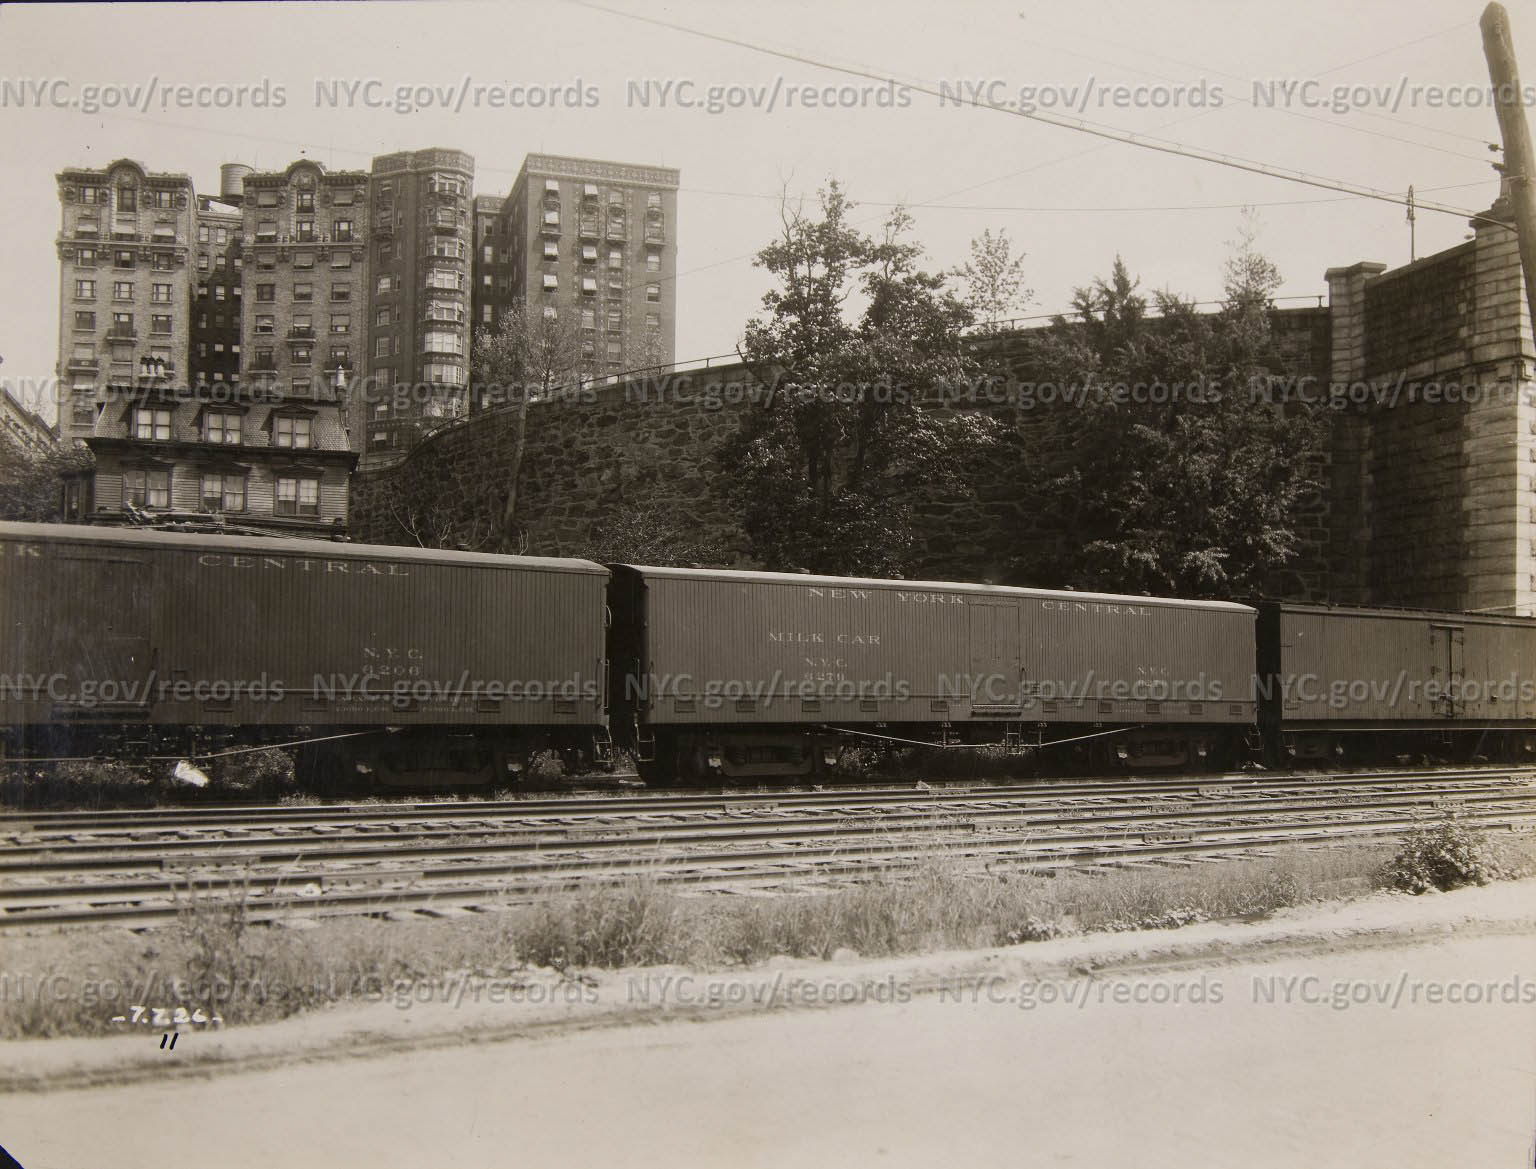 Milk train, Victoria House, large angled apartment houses